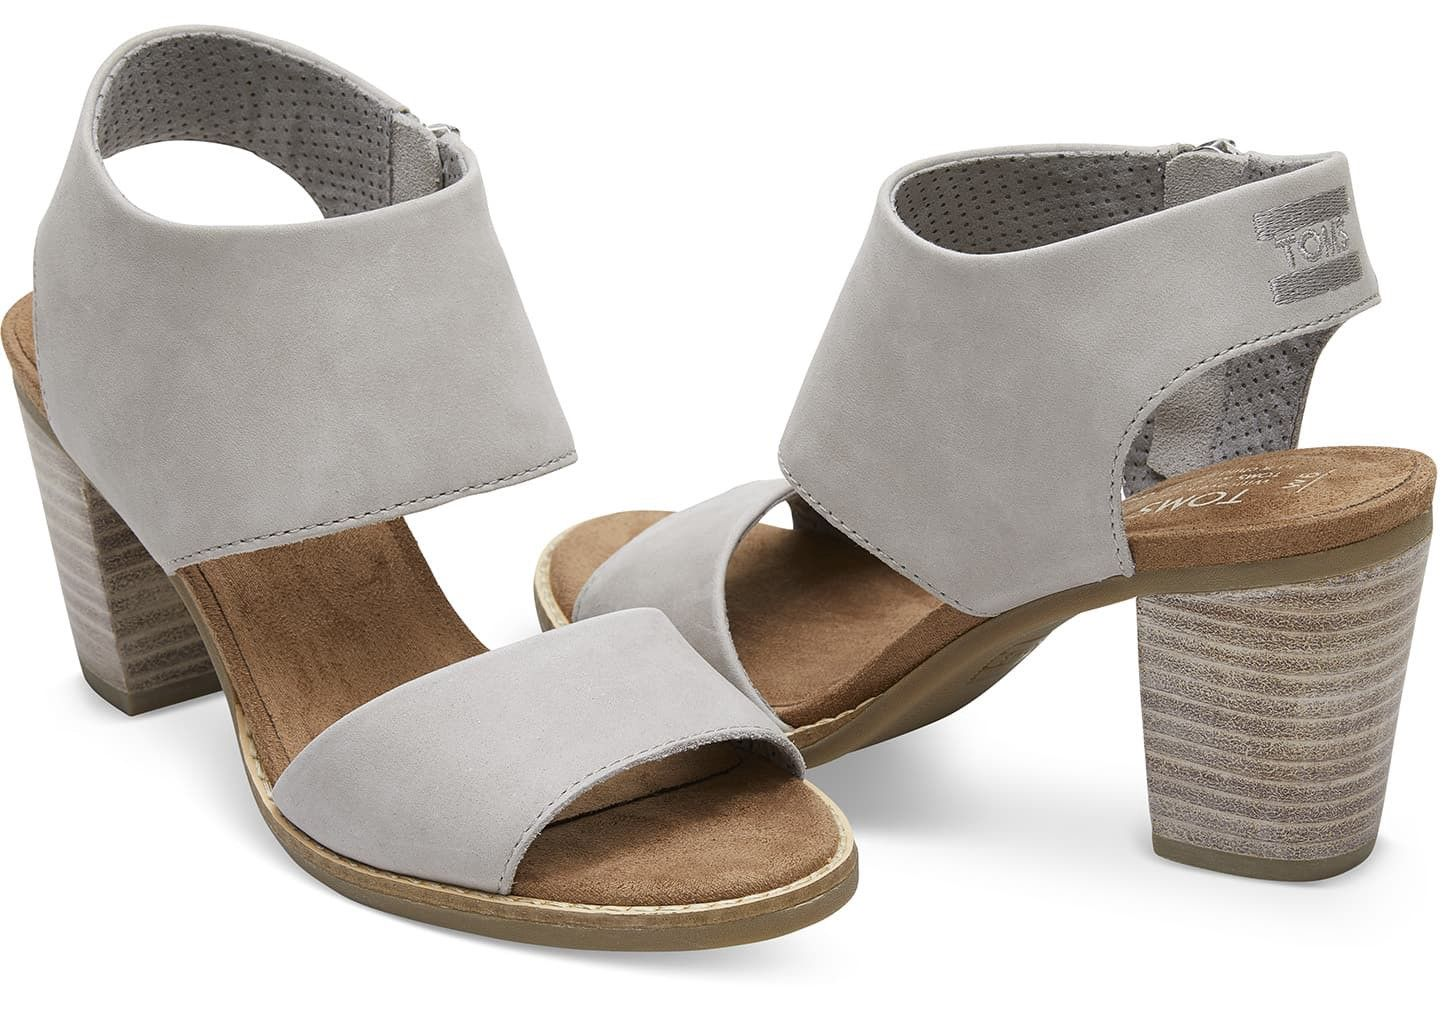 559cc6c4391 Toms Drizzle Grey Leather Women s Majorca Cutout Sandals - 12 Gray ...